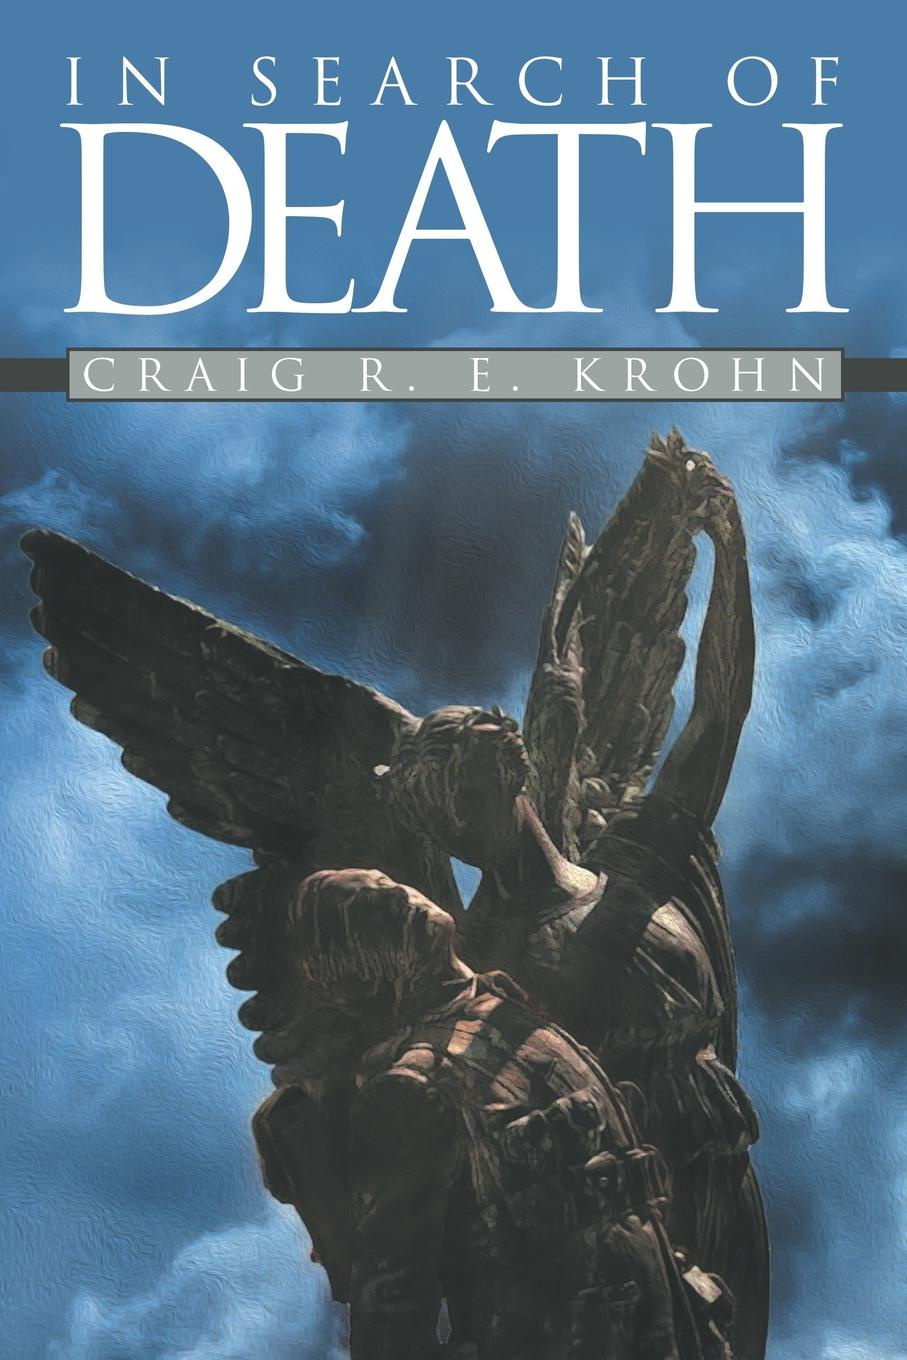 Craig R. E. Krohn In Search of Death in the arms of an angel